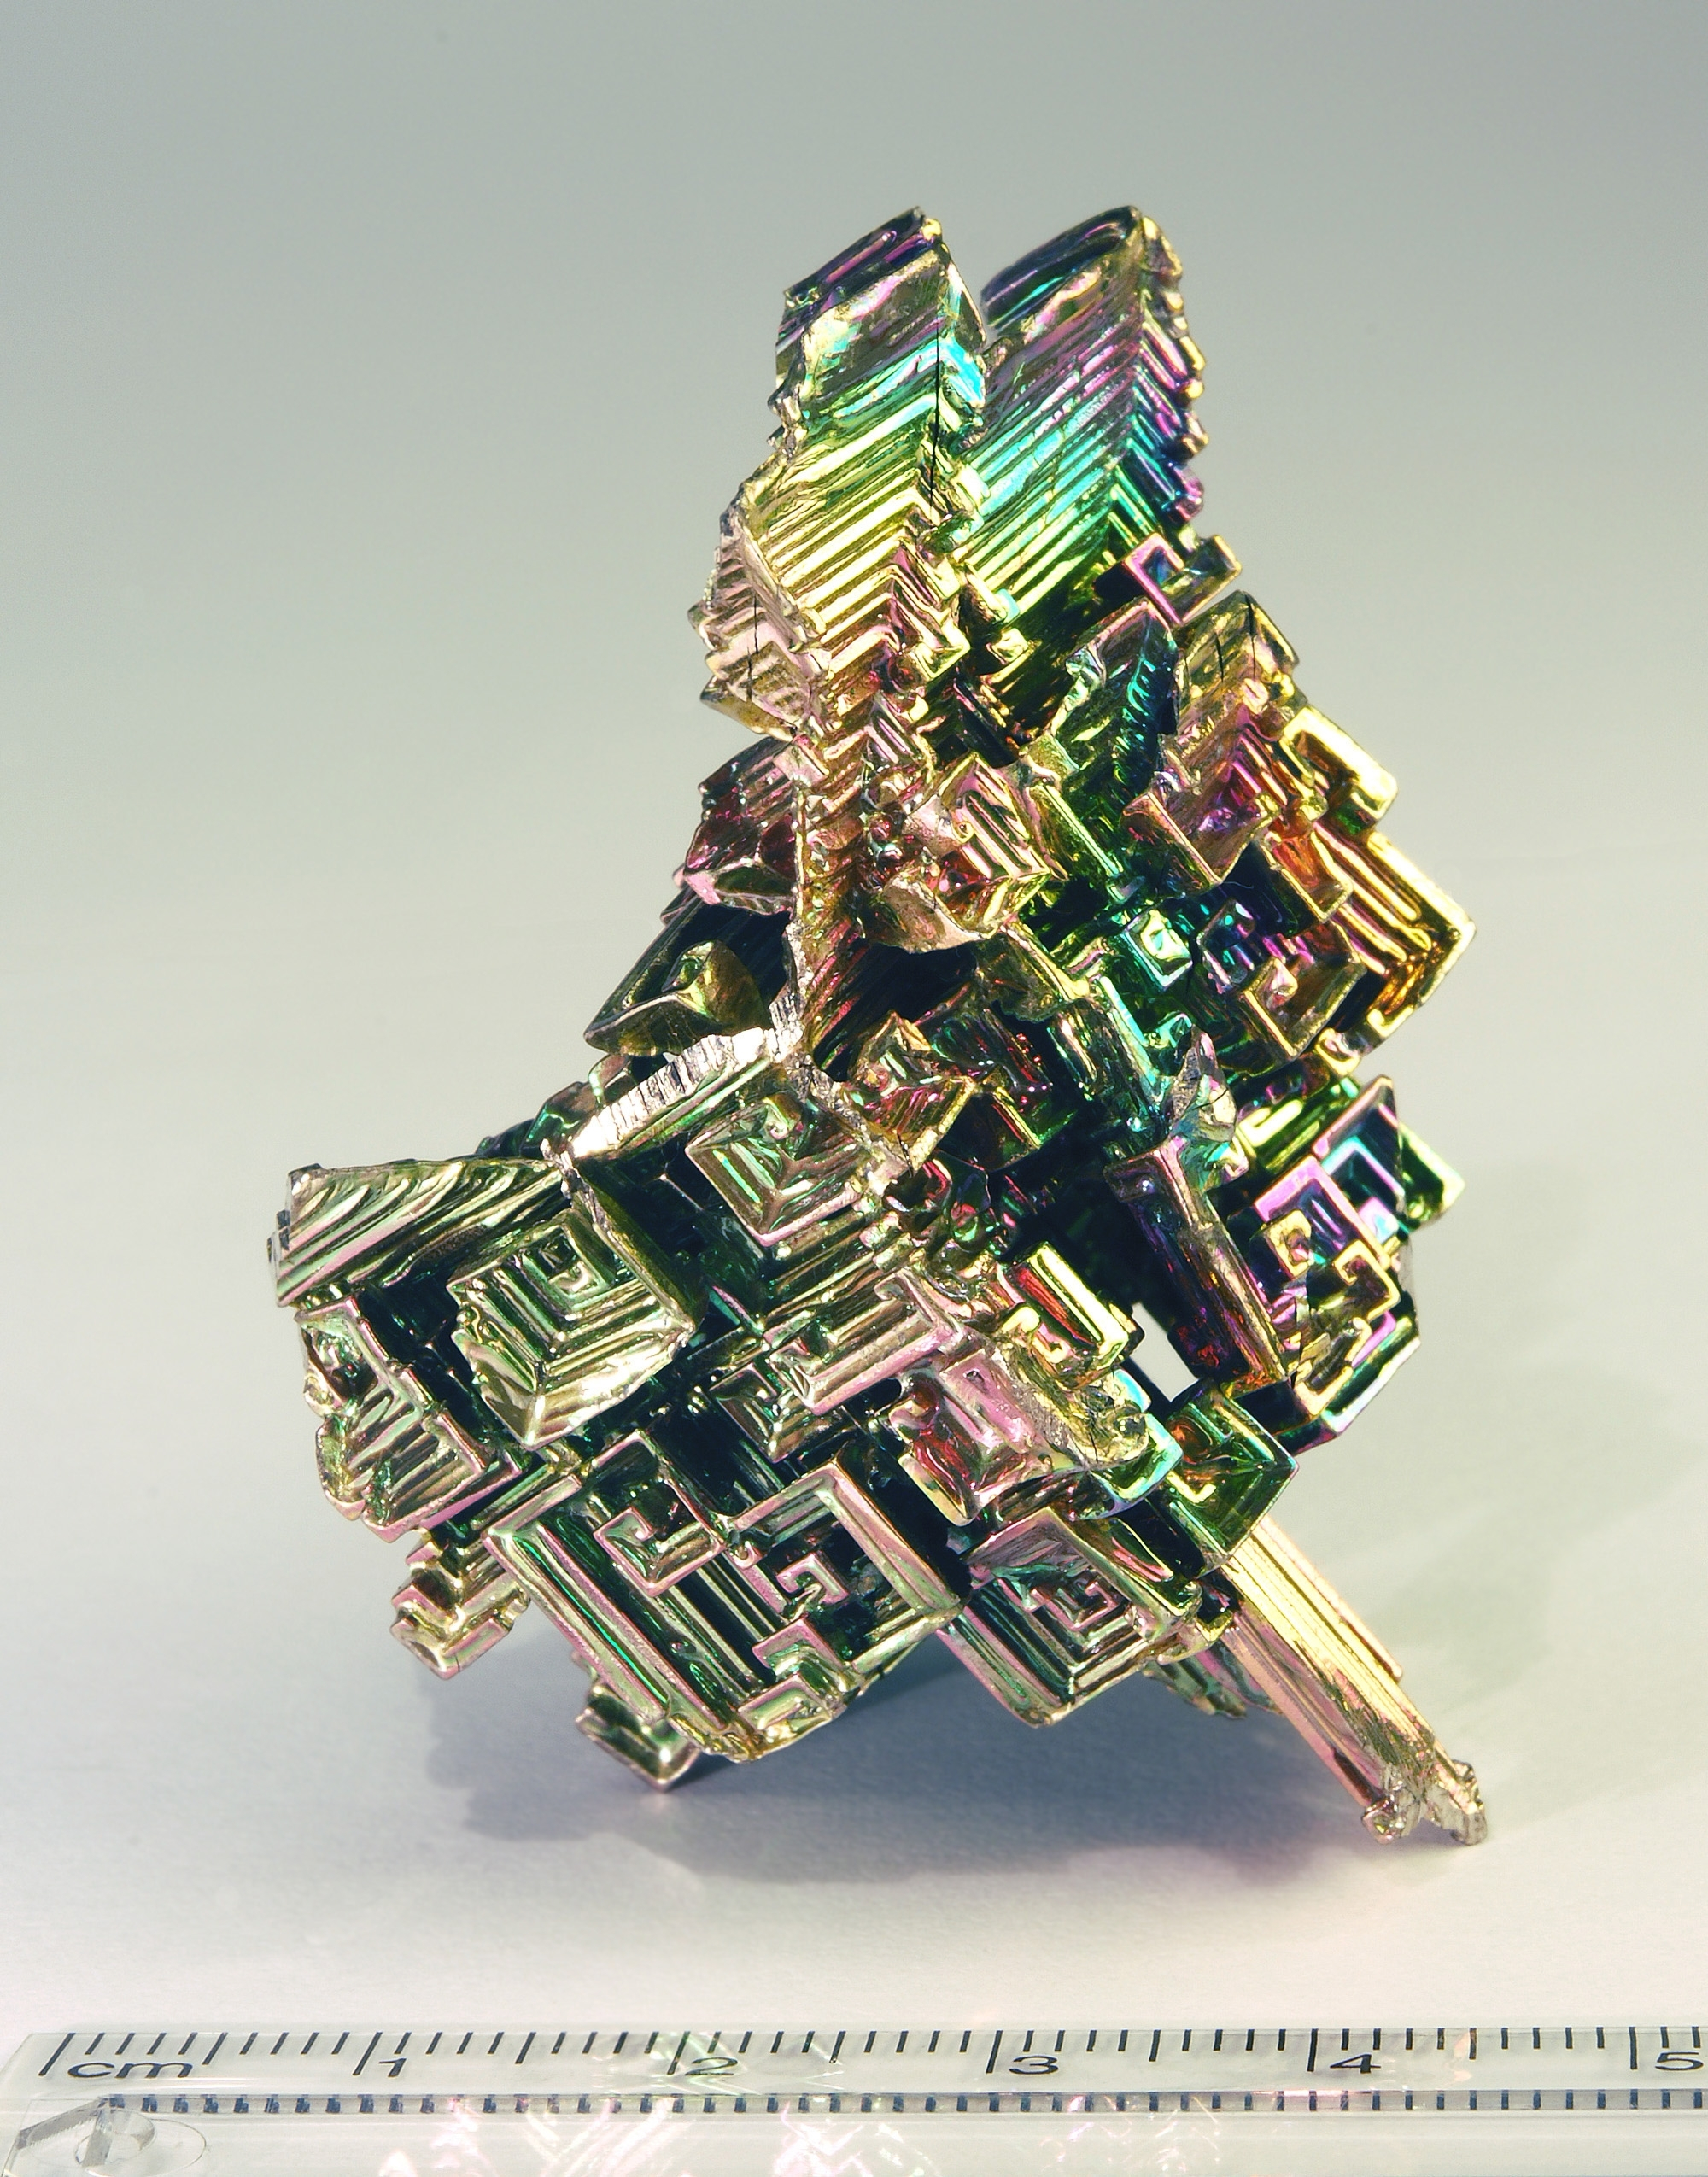 iridescence bismuth HD Wallpaper